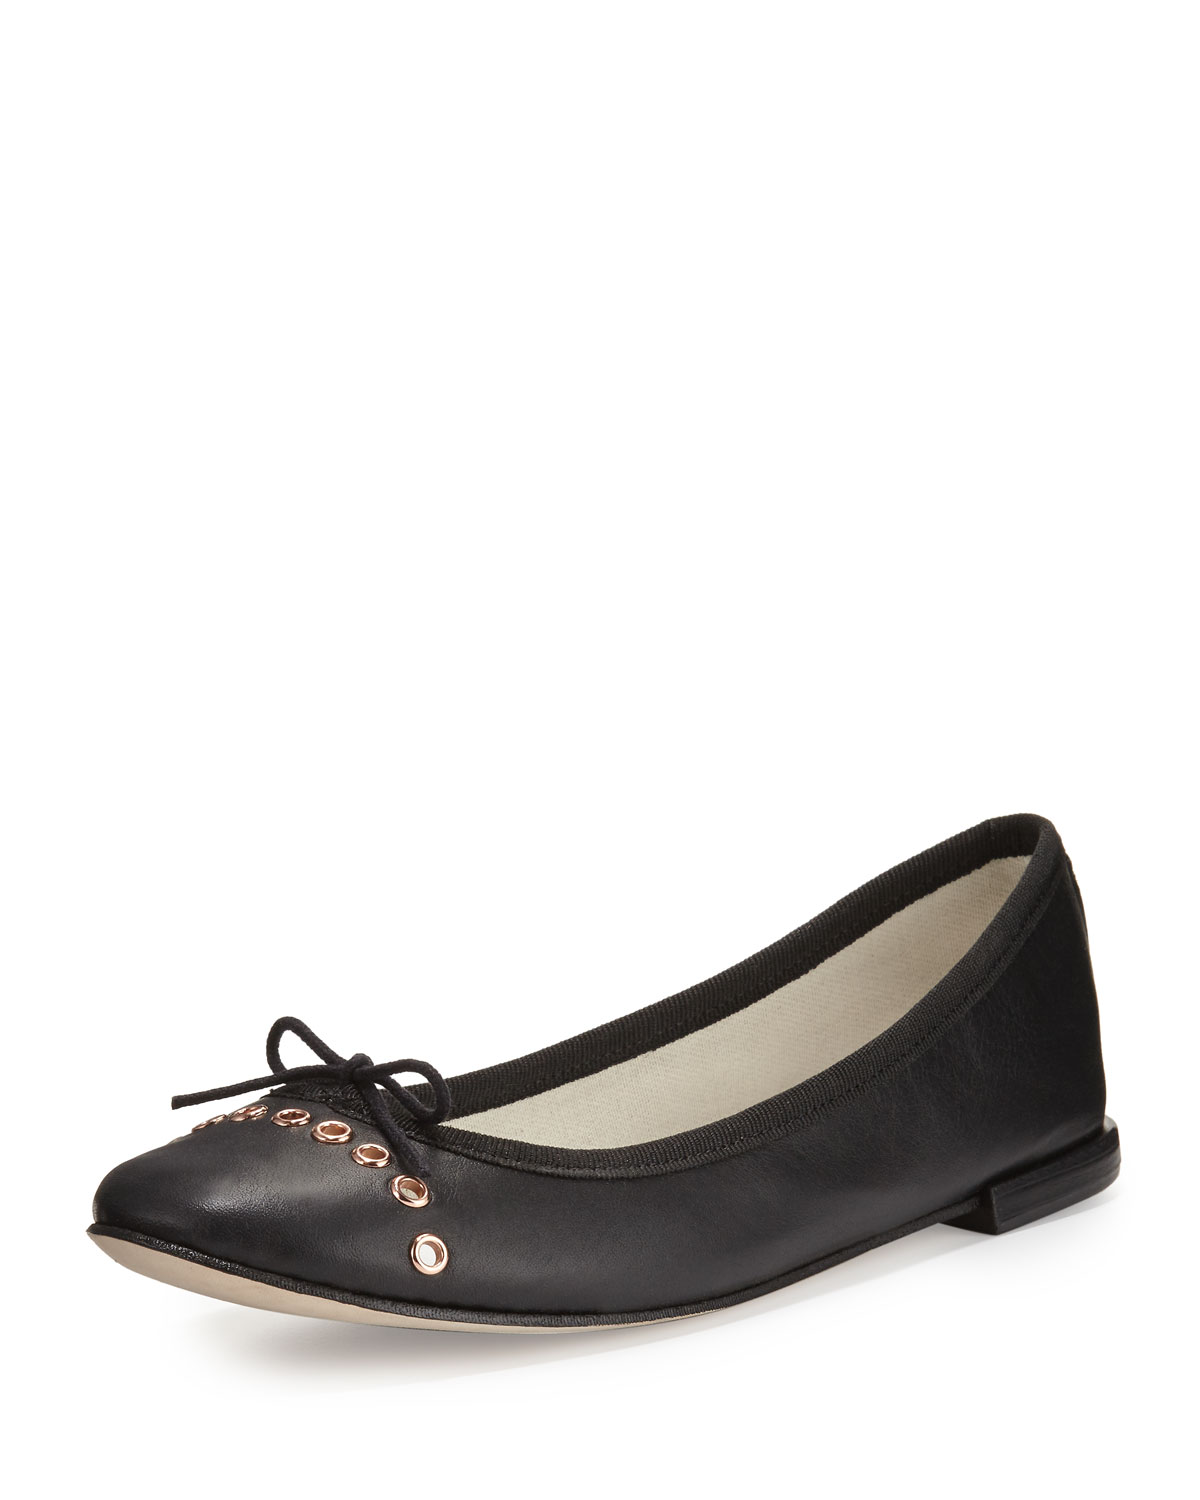 clearance with credit card Neiman Marcus Grommet Leather Flats discount shop for URtEEoxcmX